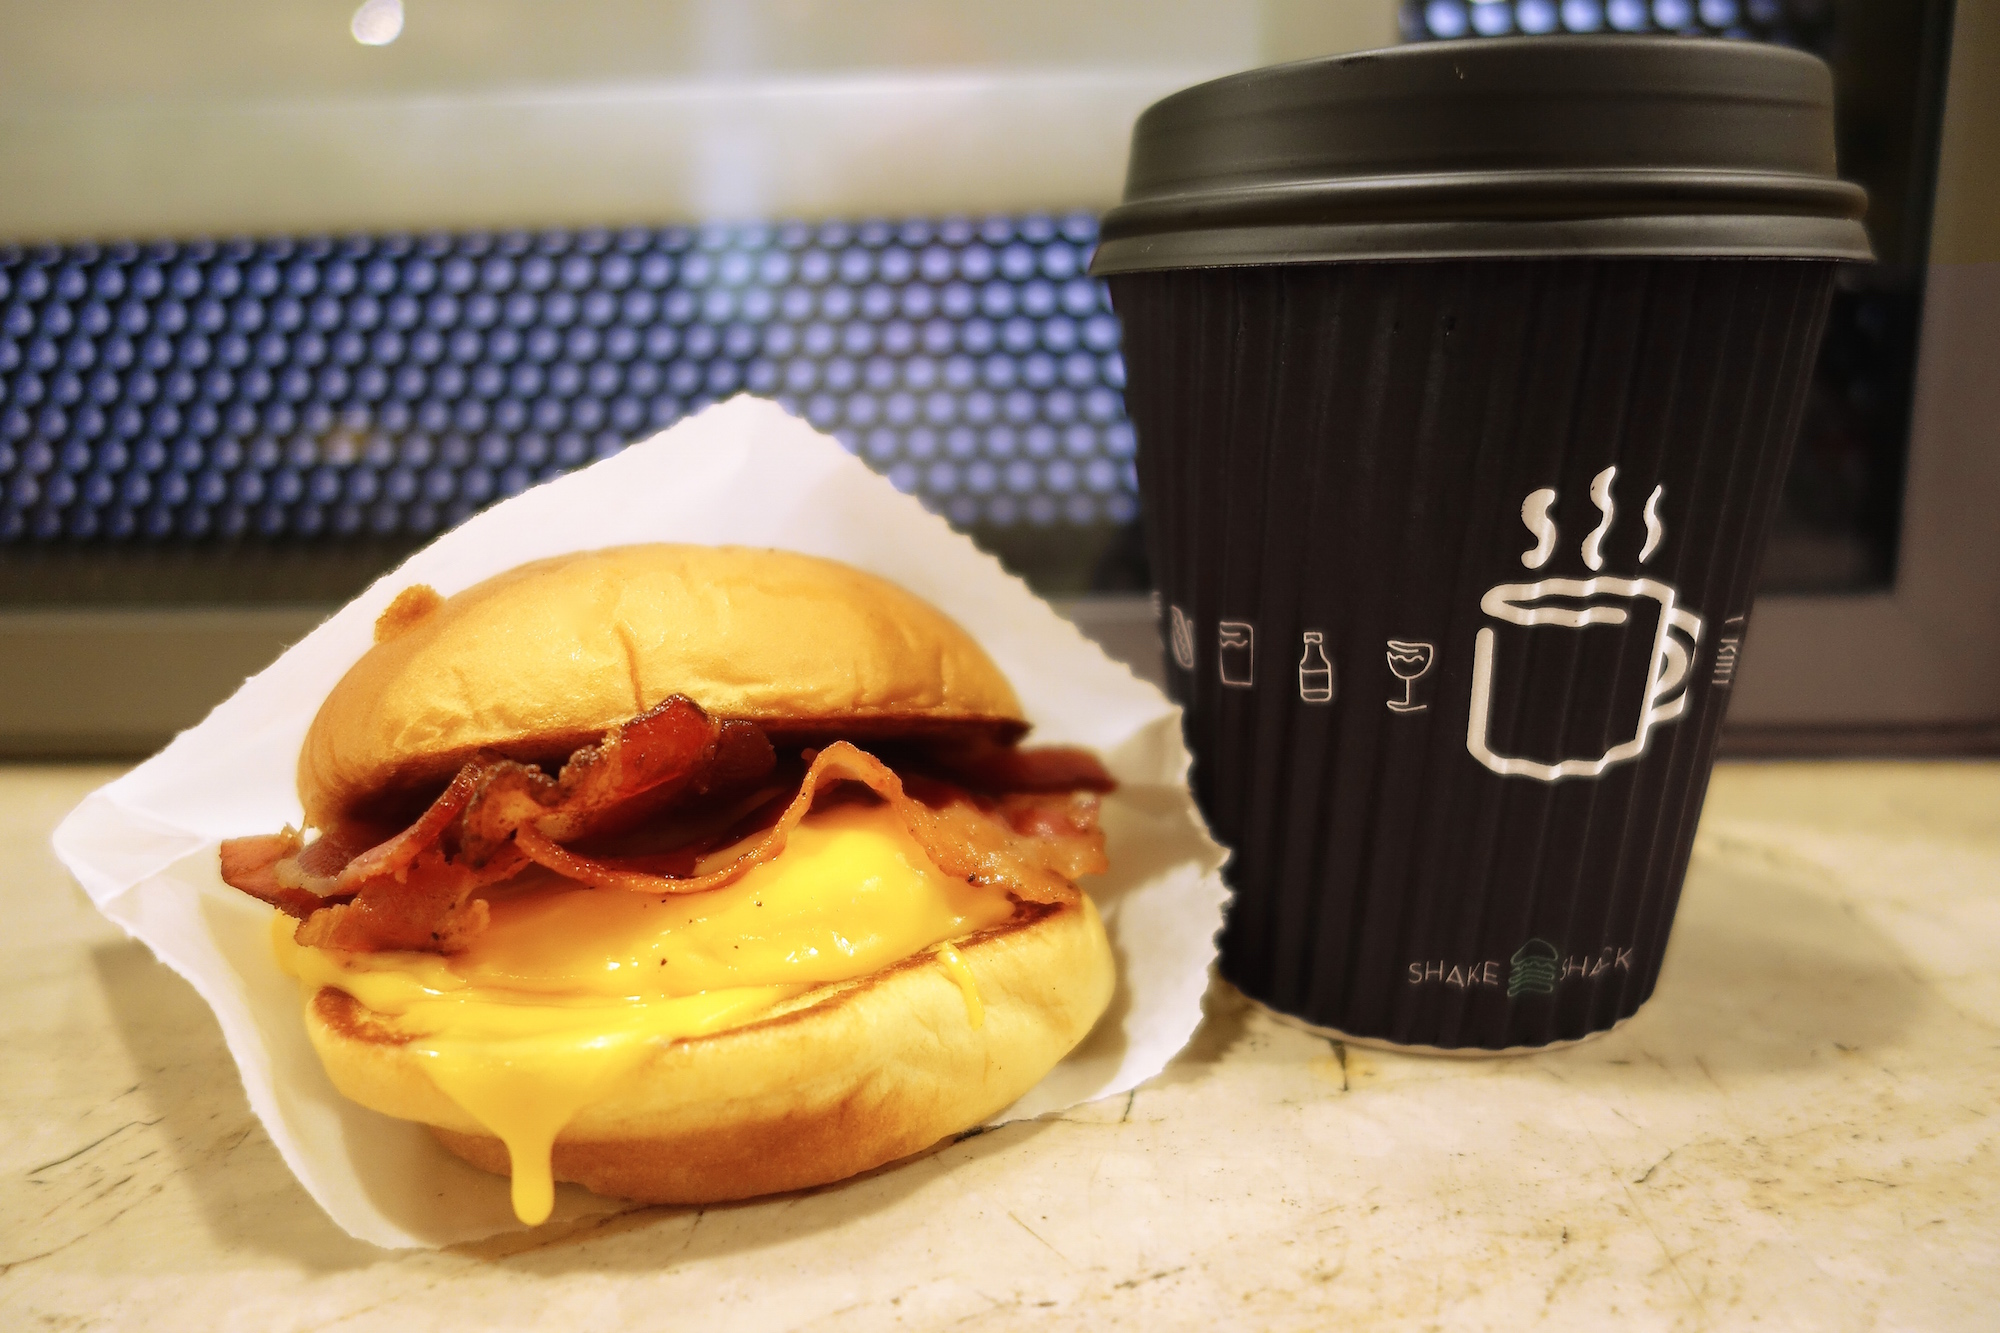 These Shake Shack Locations Serve Breakfast, And You Don't